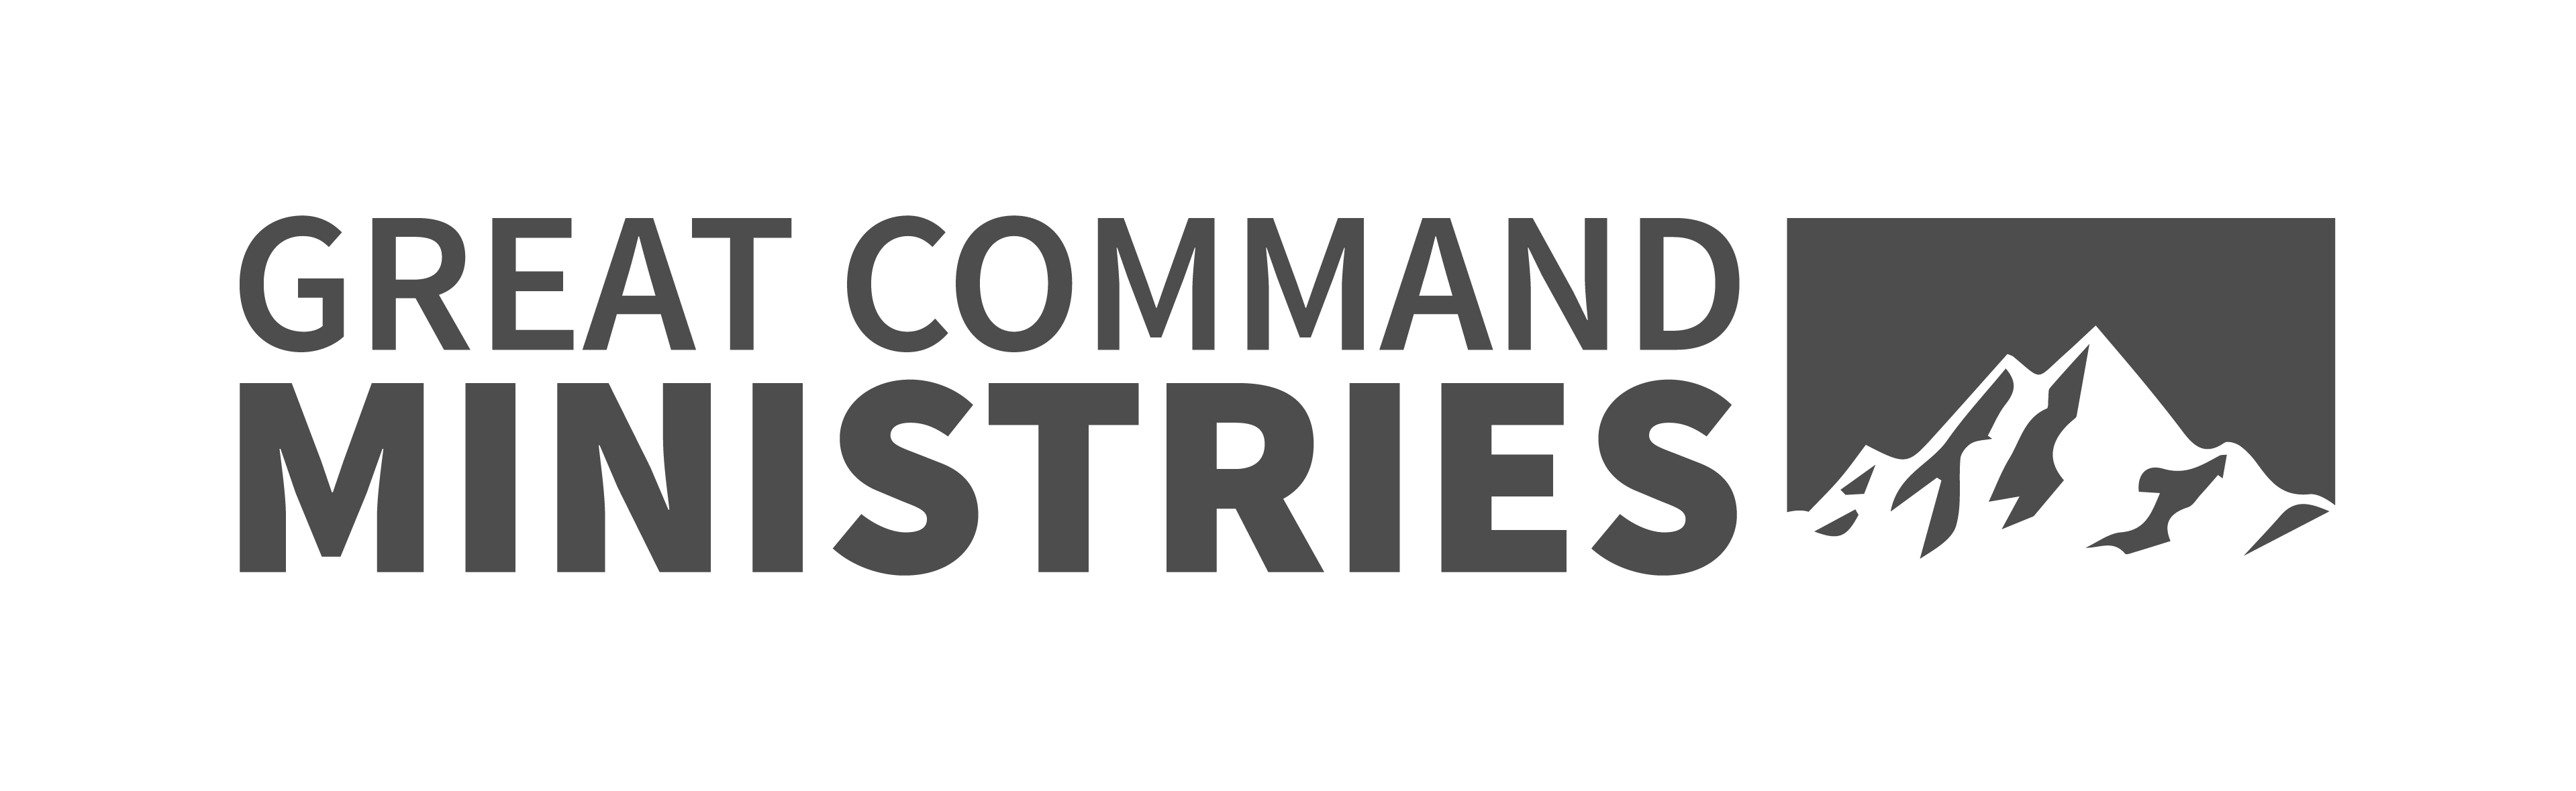 Great Command Ministries